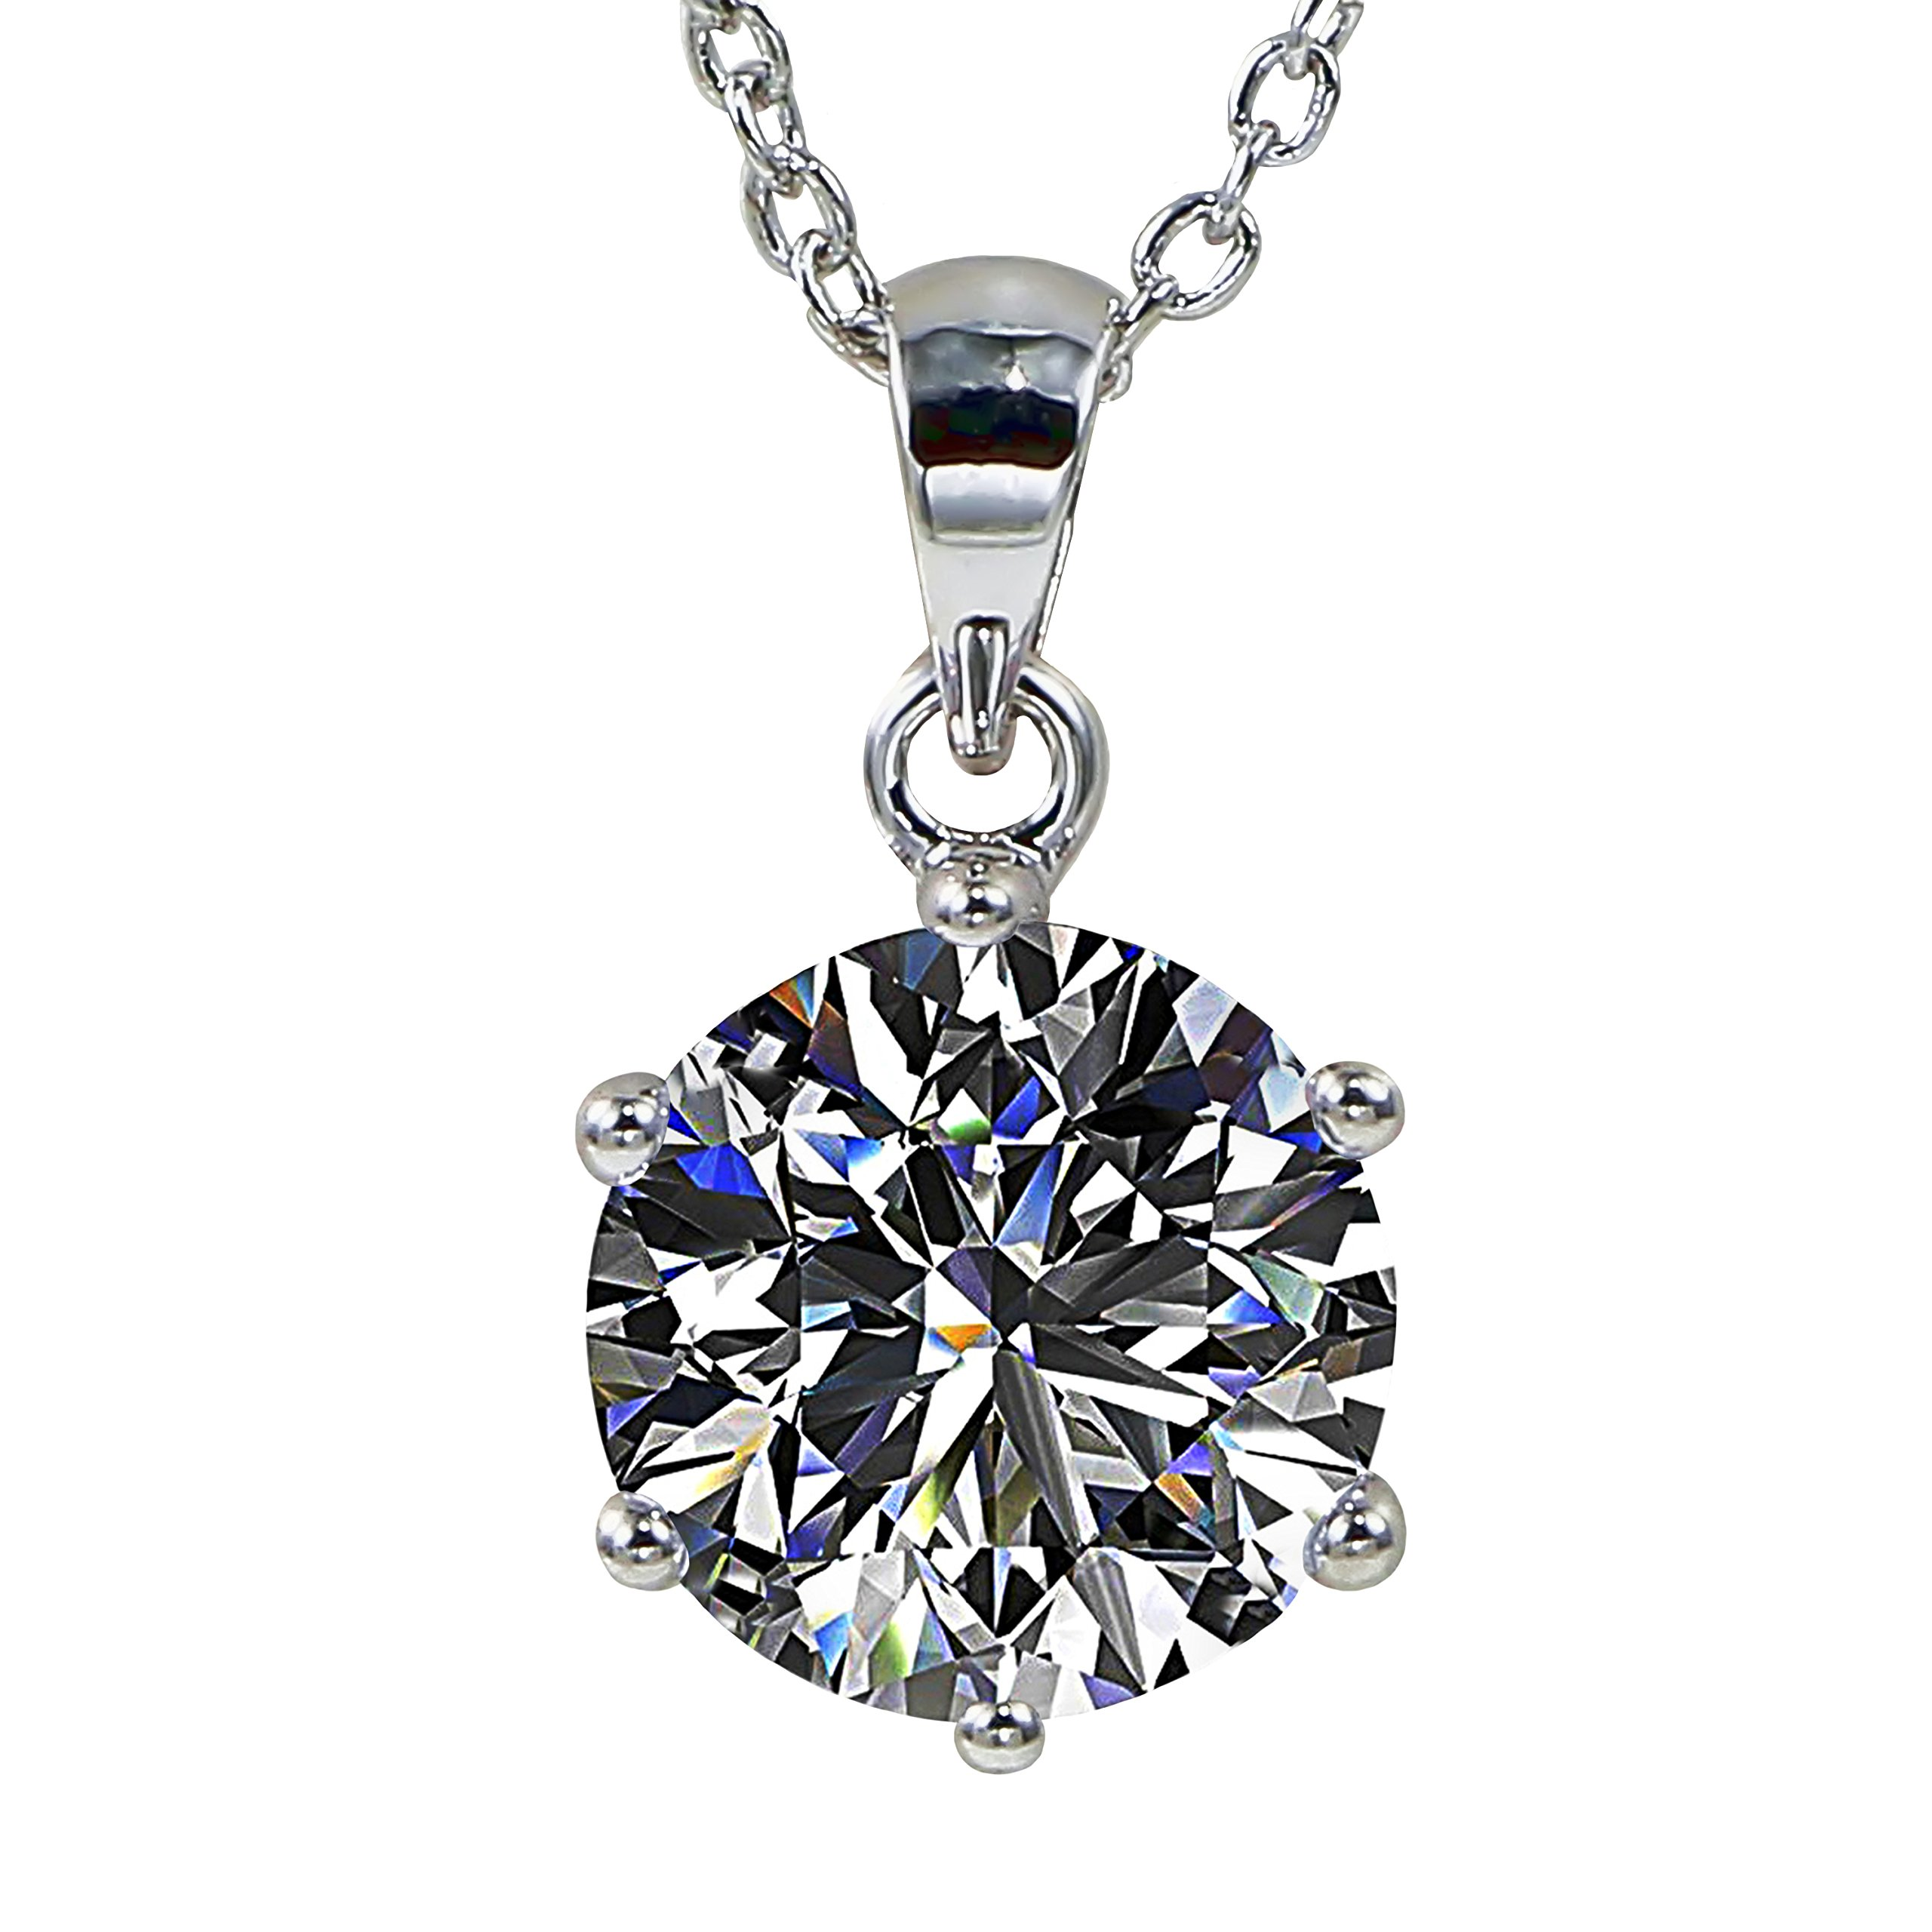 Juliani Chain Pendant Necklace Jewelry - 10mm Solitaire 3 Carat CZ 18'' White Gold Plated for Women Girls